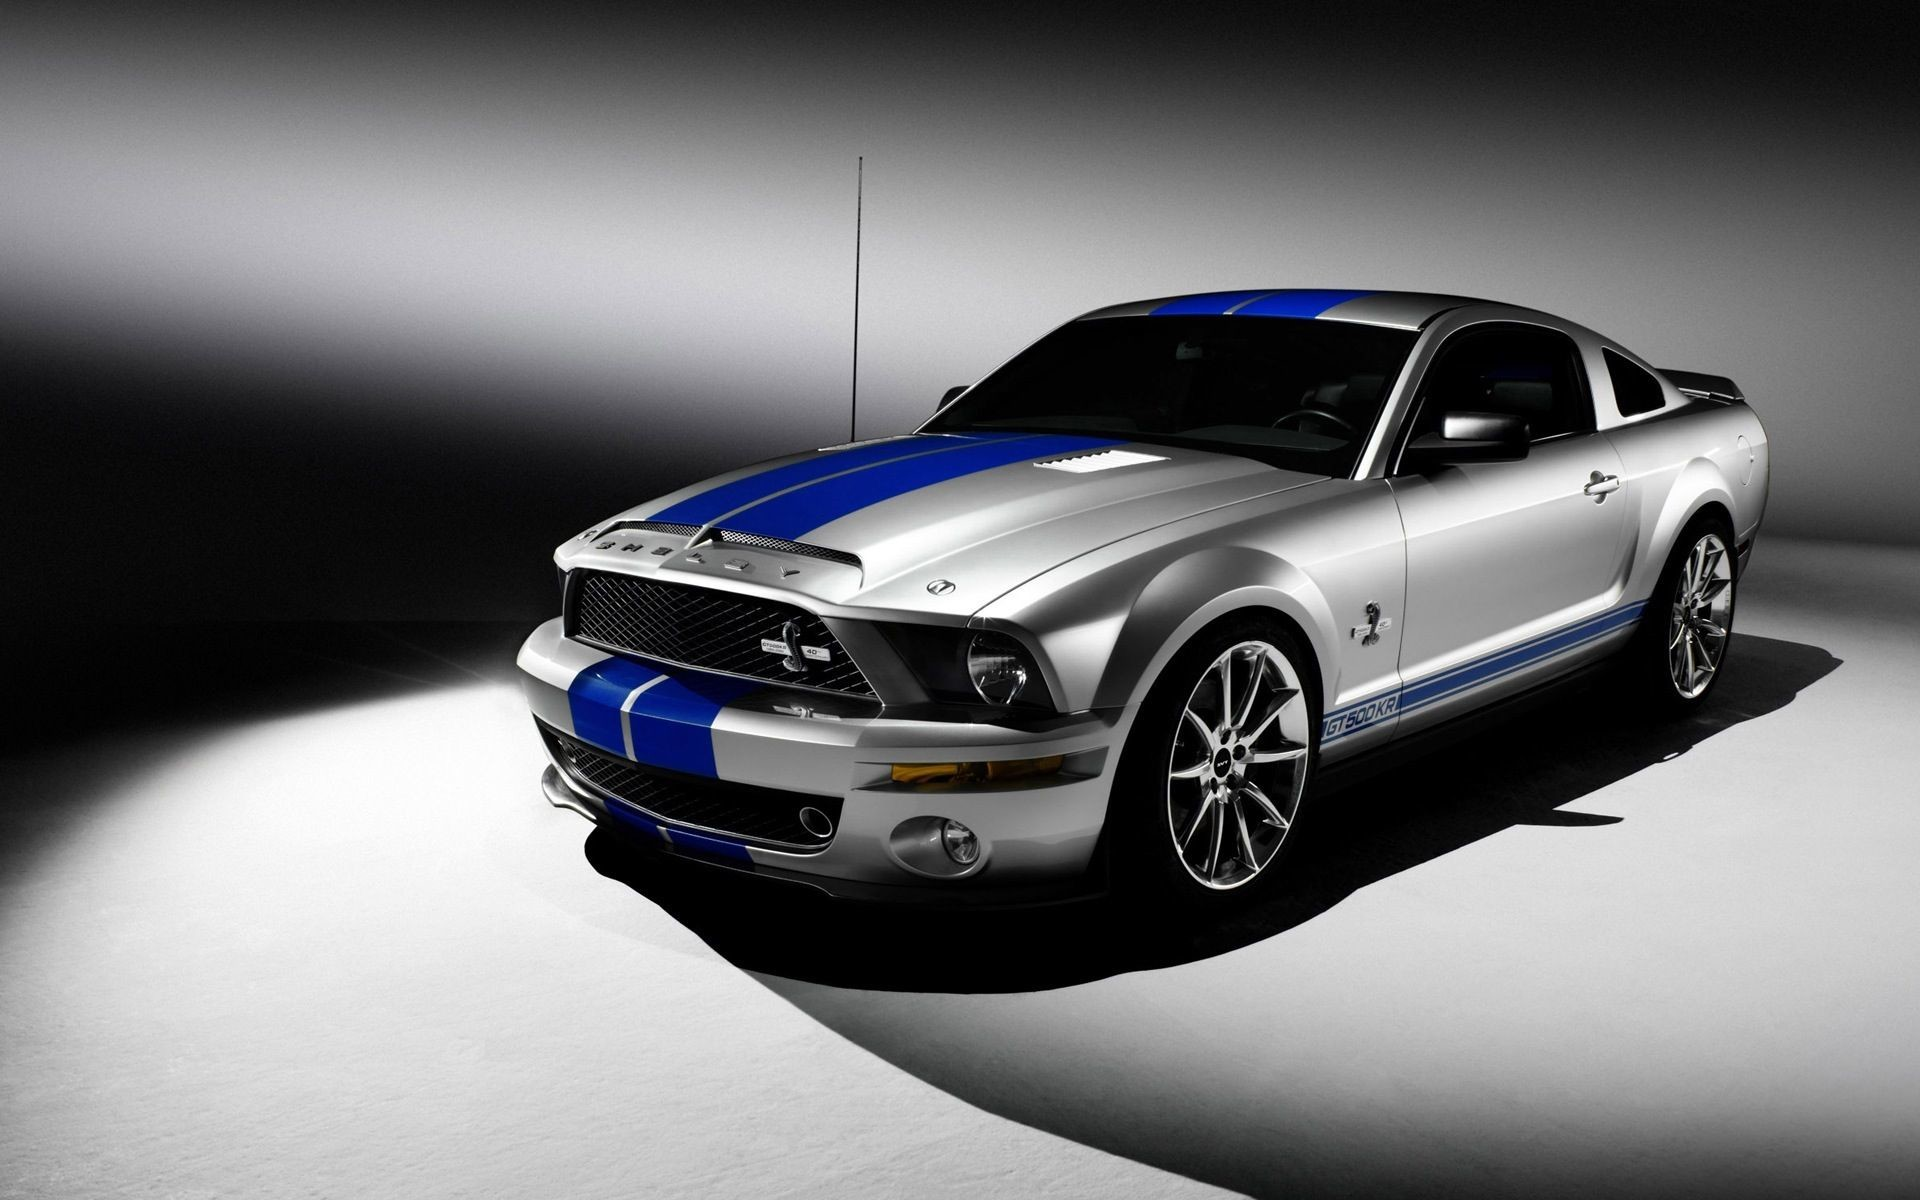 Res: 1920x1200, ford shelby mustang gt500 Wallpapers #hdwallpapers #wallpapers #shelby # mustang #gt500 #ford